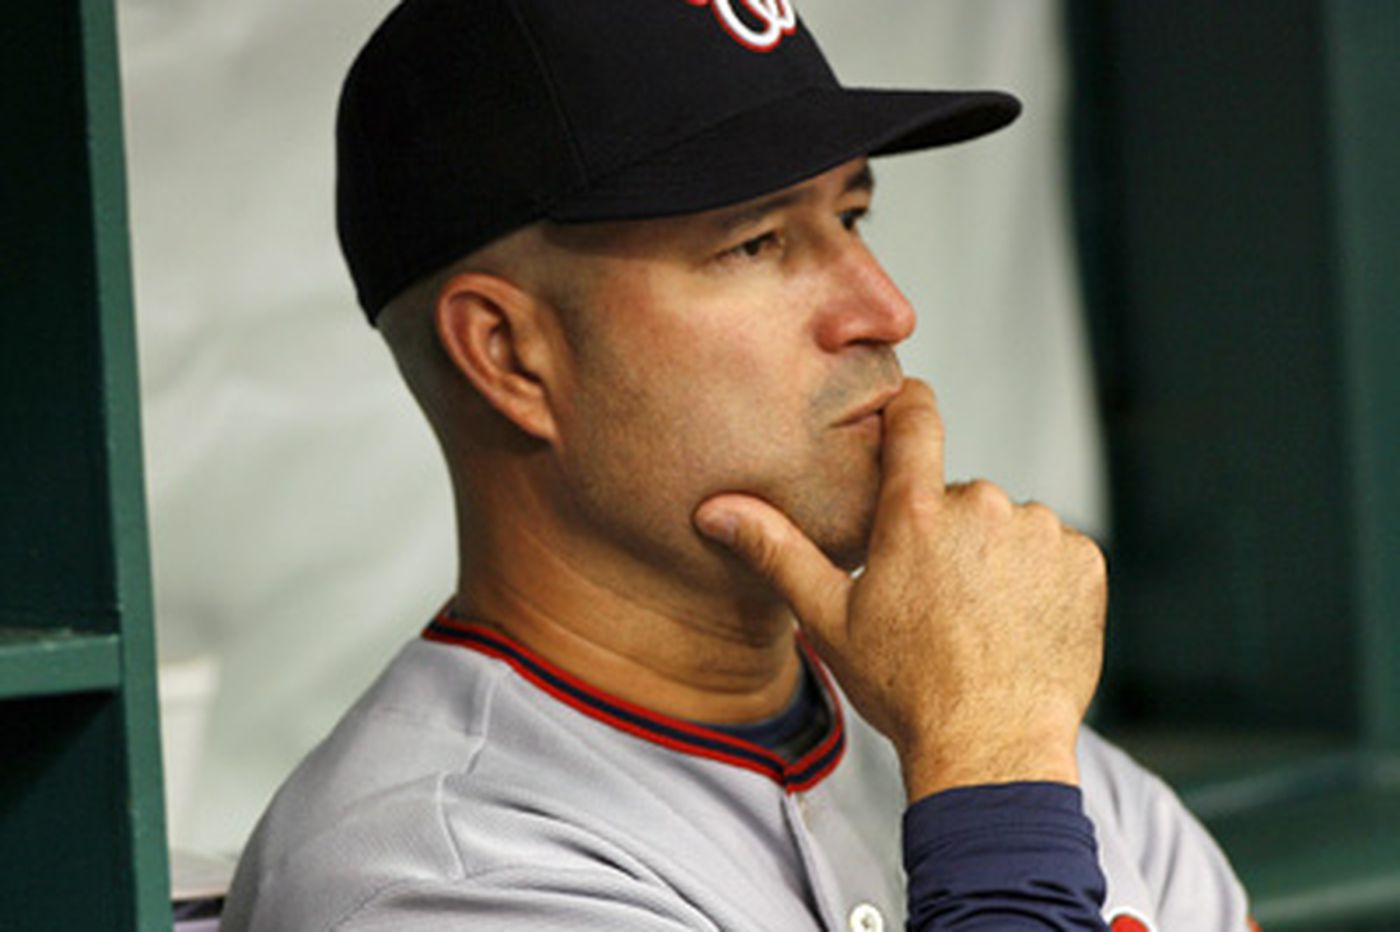 Paul Hagen: In major leagues, changing manager not always the answer